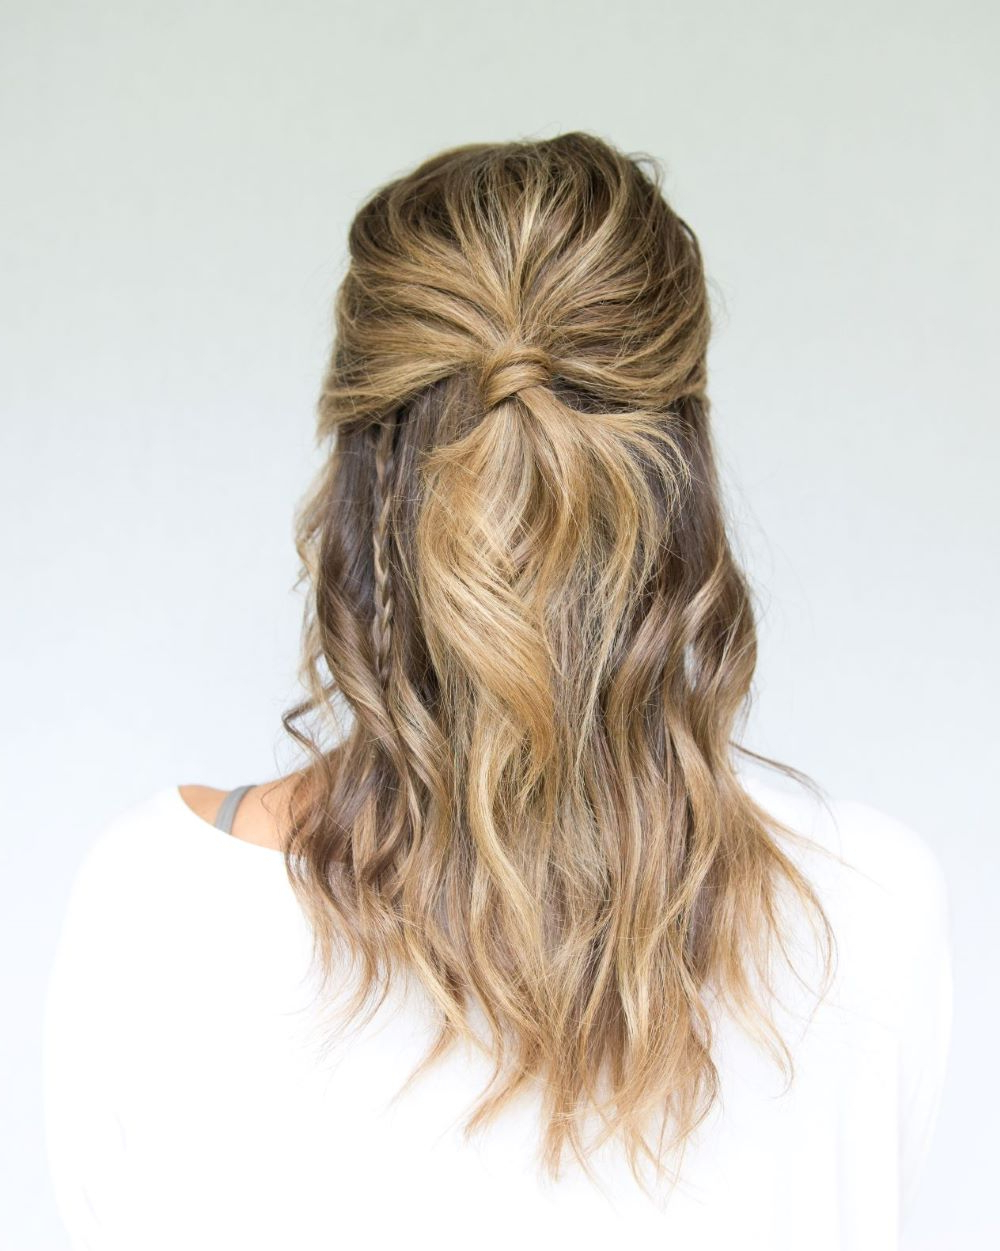 Go Boho This With Half Up Half Down Hairstyle – Lulus Pertaining To 2020 Half Up Half Down Boho Braided Hairstyles (View 2 of 20)